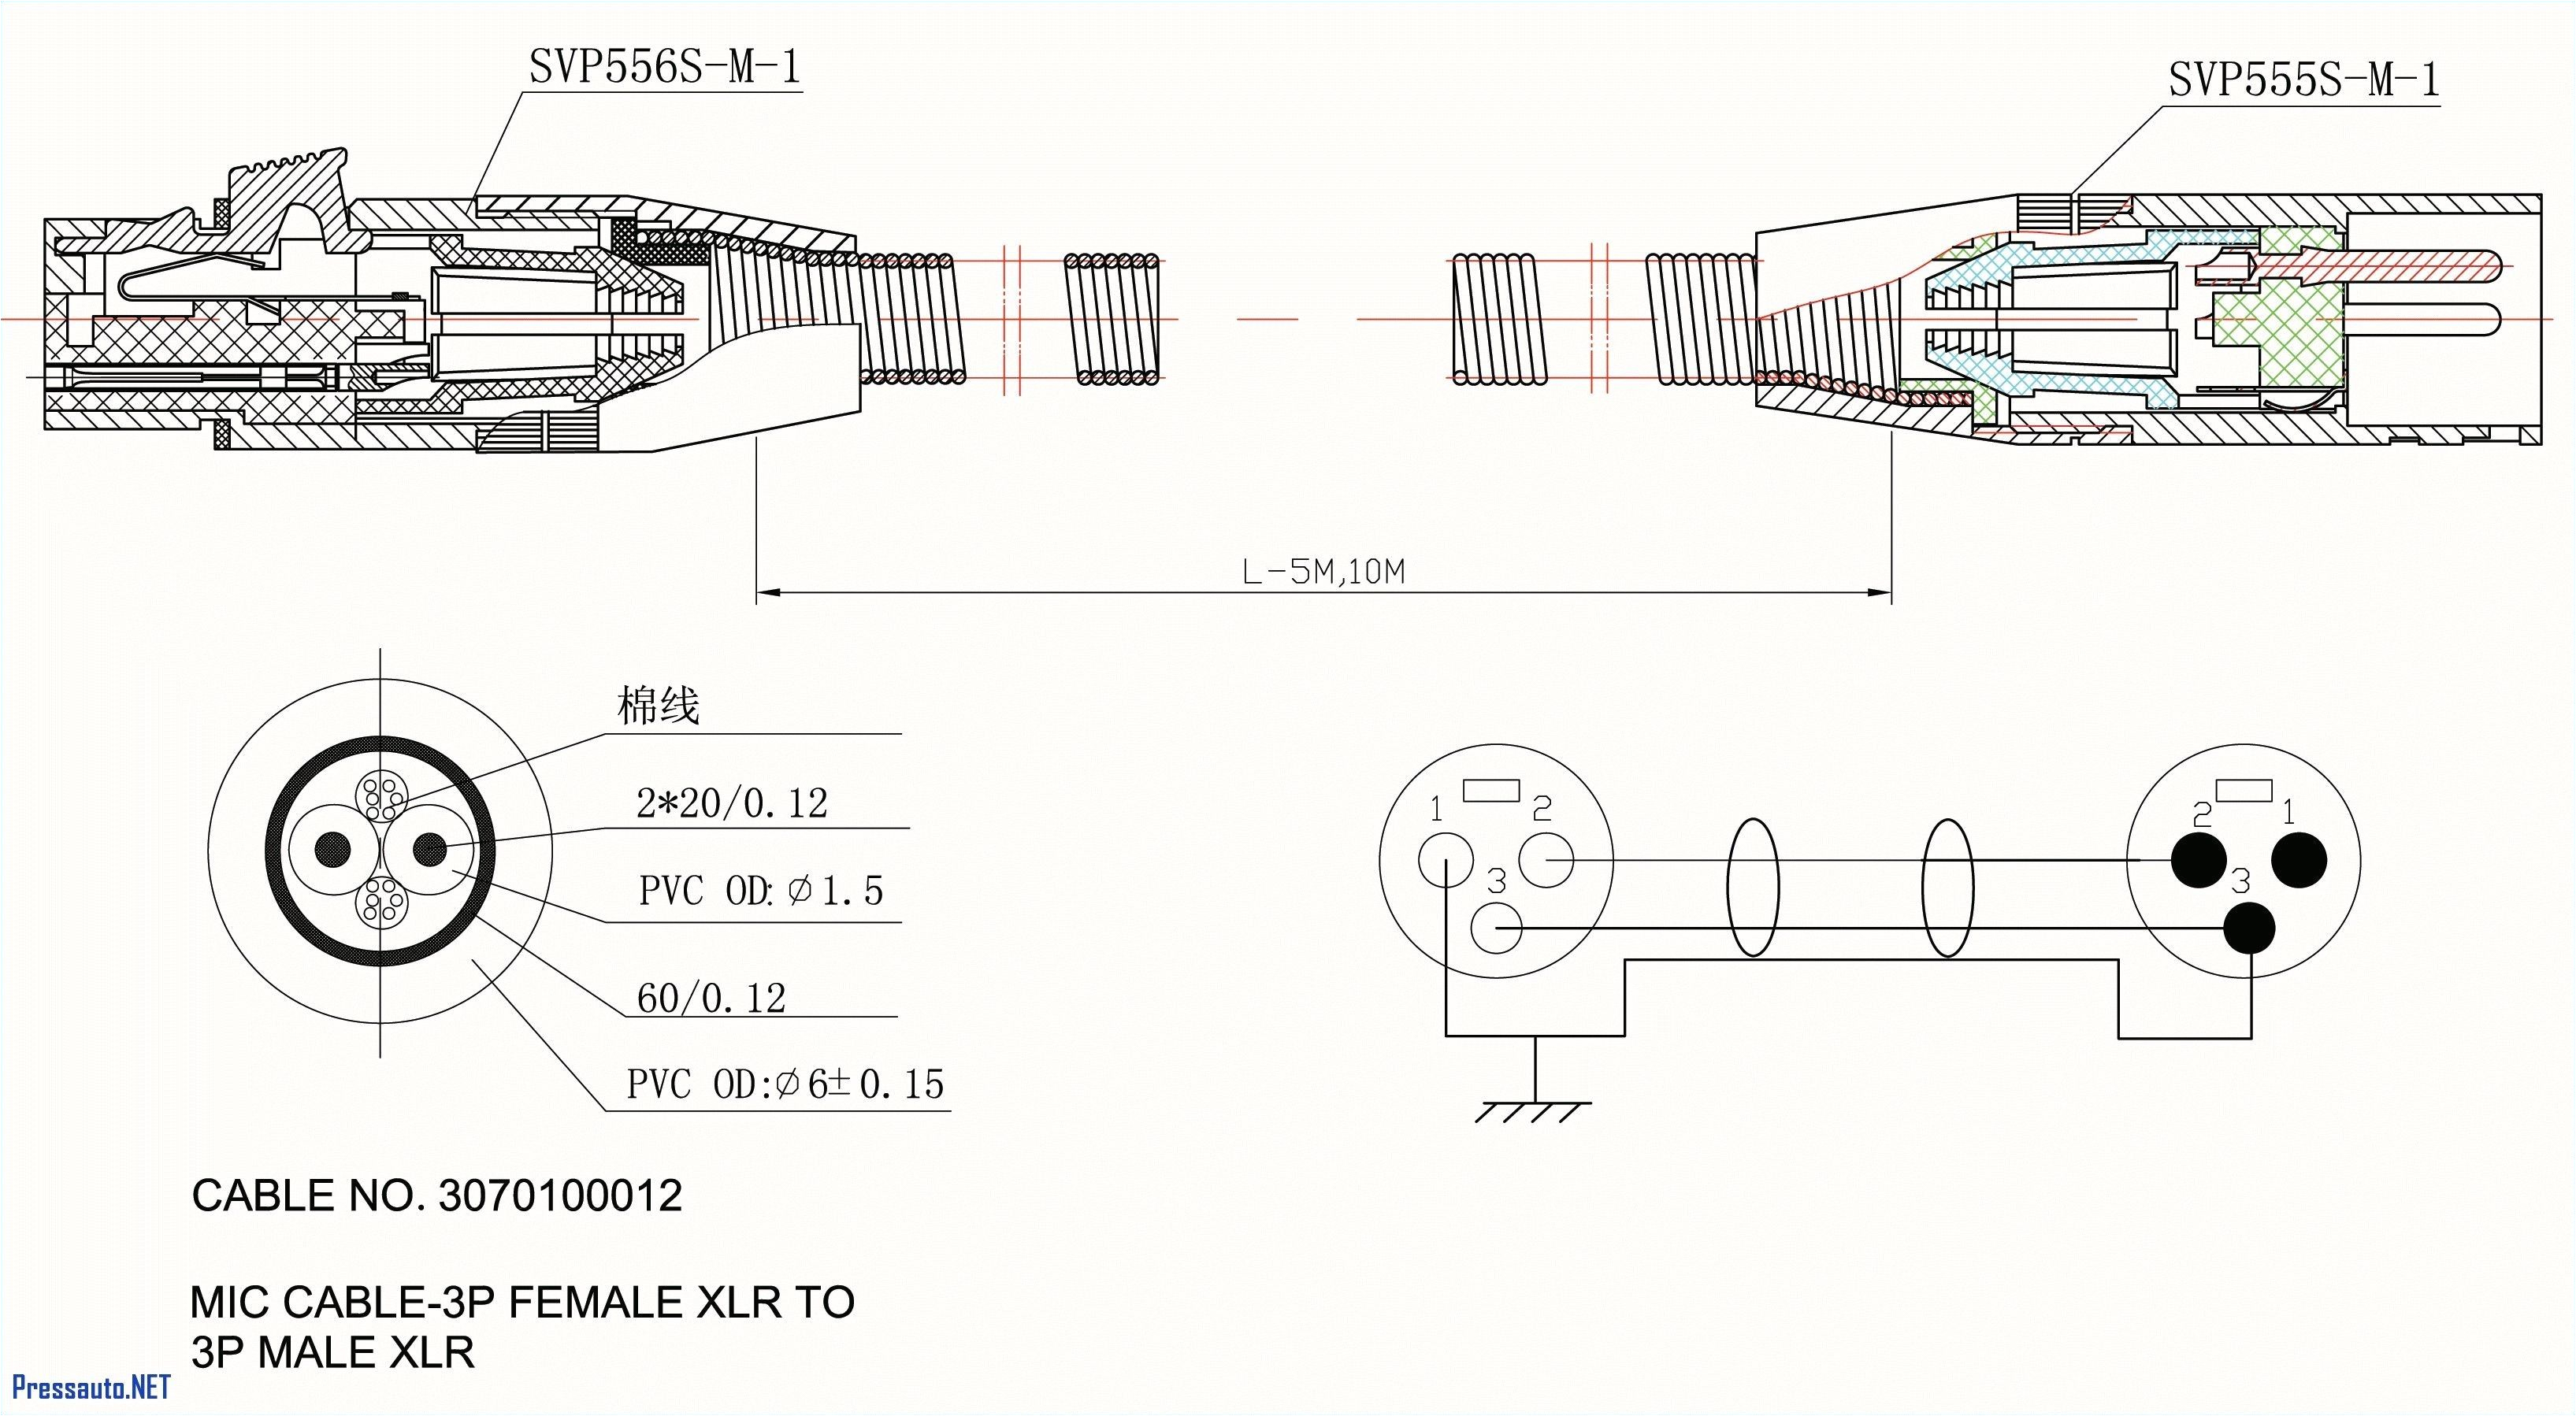 best of wiring diagram 7 pin trailer plug toyota diagrams digramssample diagramimages